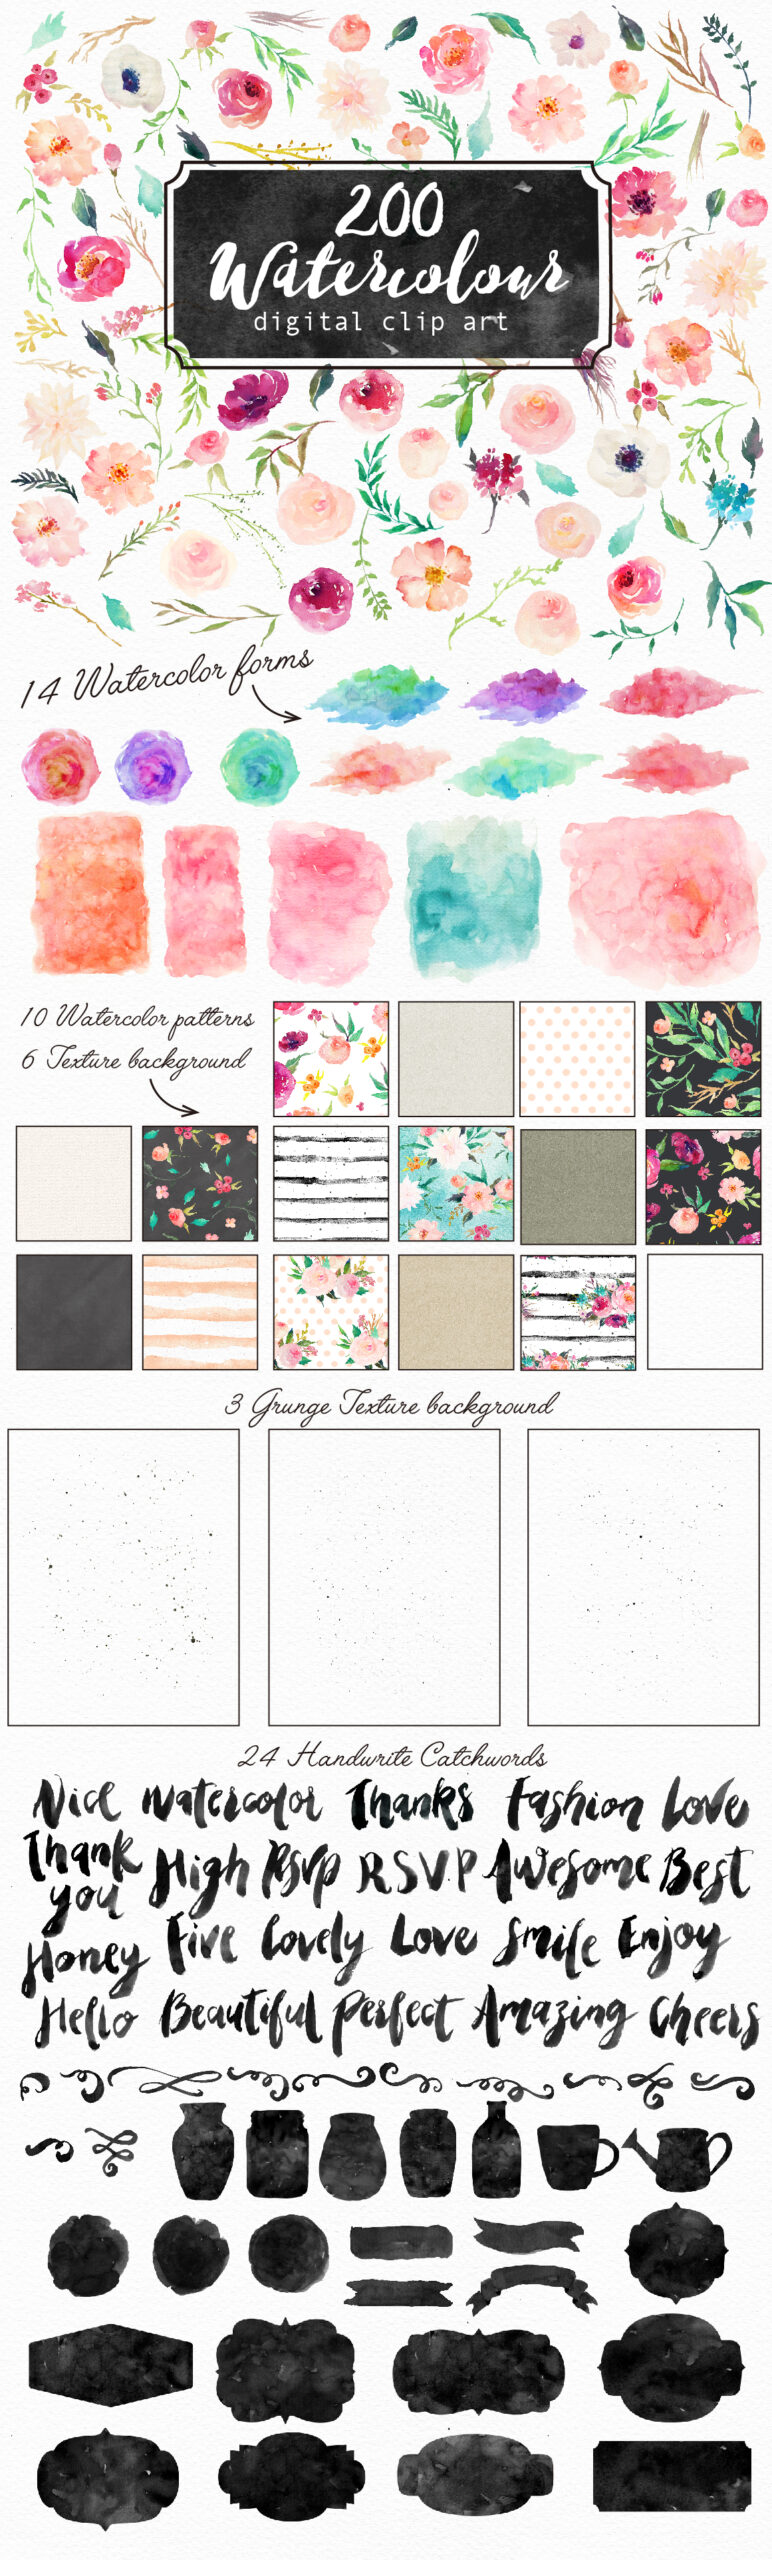 watercolor-flower-diy-pack-vol.4-preview-finish-03-o